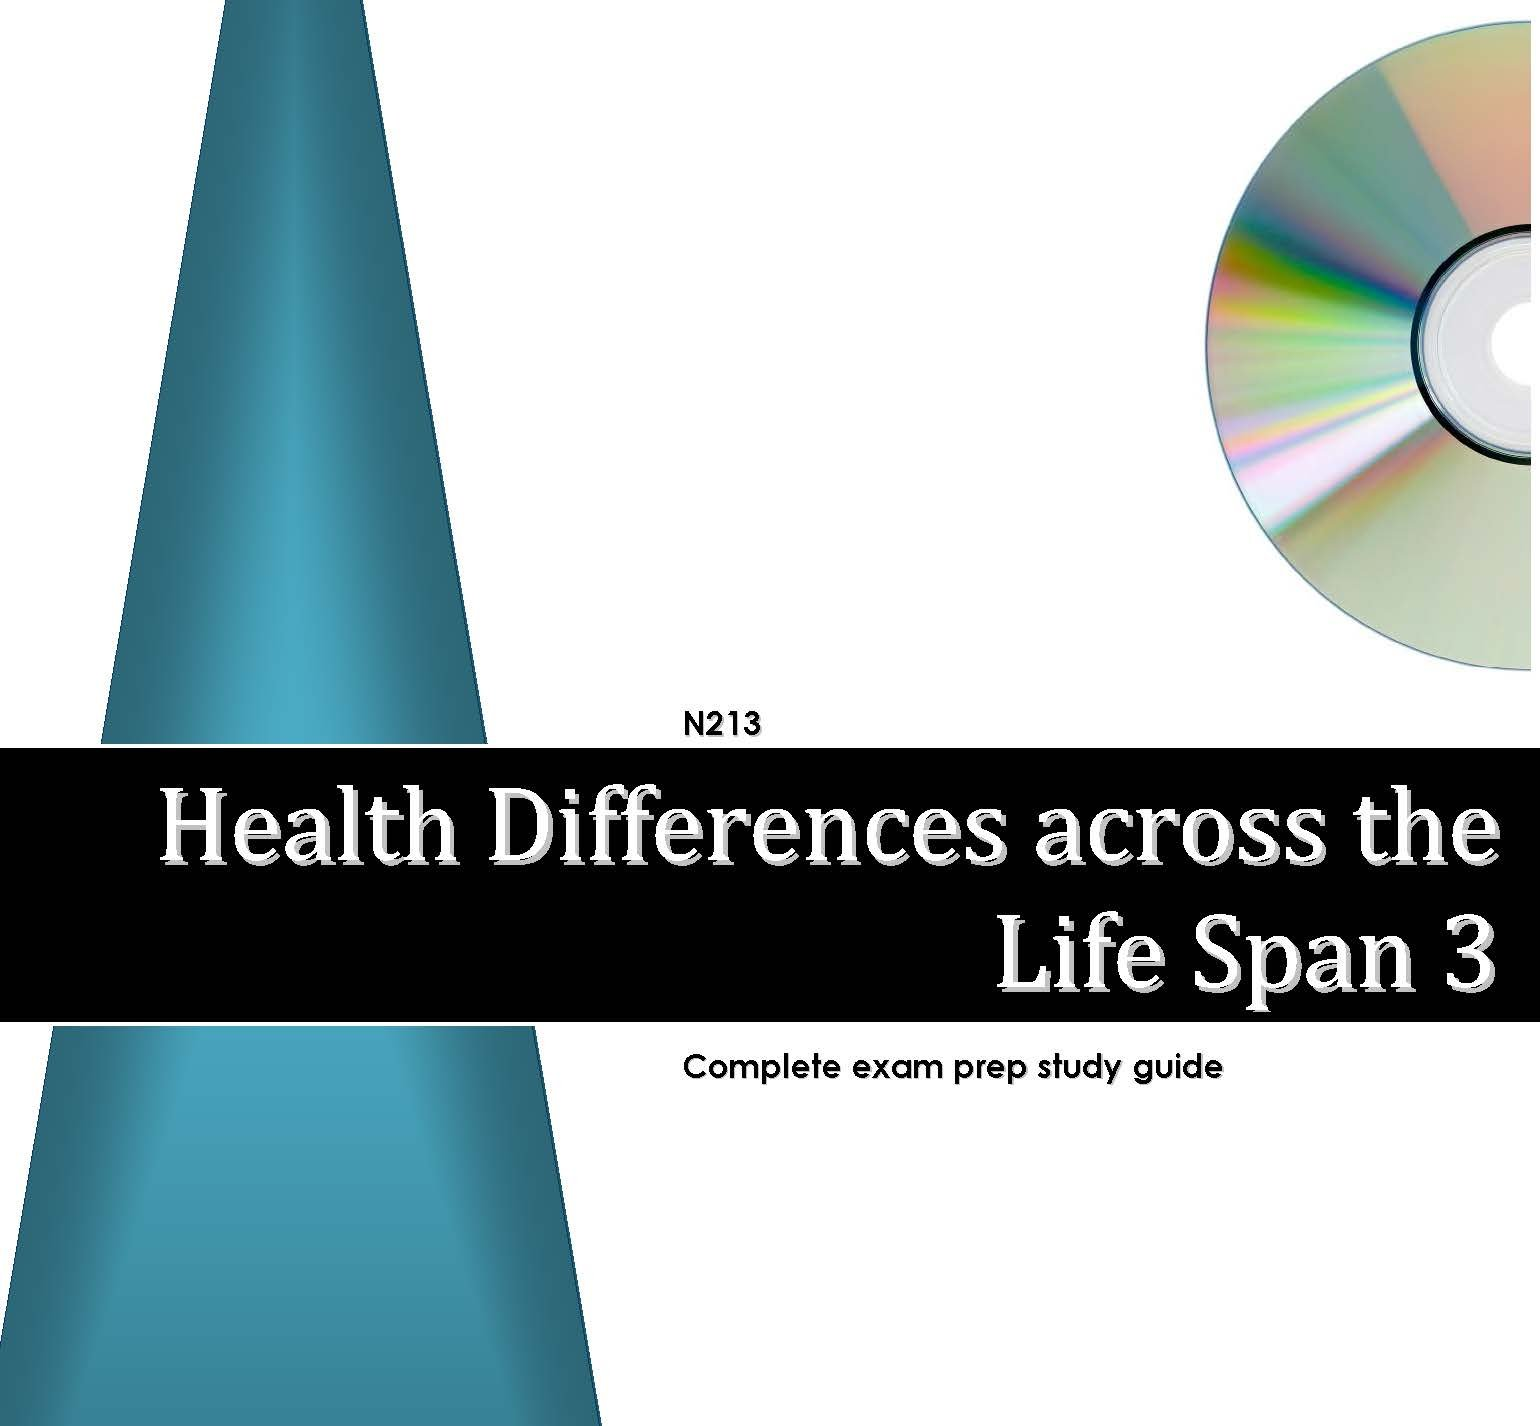 N213 Health Differences Across The Life Span 3 Is A Diagram On How To Print Sheet Kelsey Excelsior Press Comprehensive Exam Prep Study Guide 9781936452064 Mystudygroup101 Llc Books